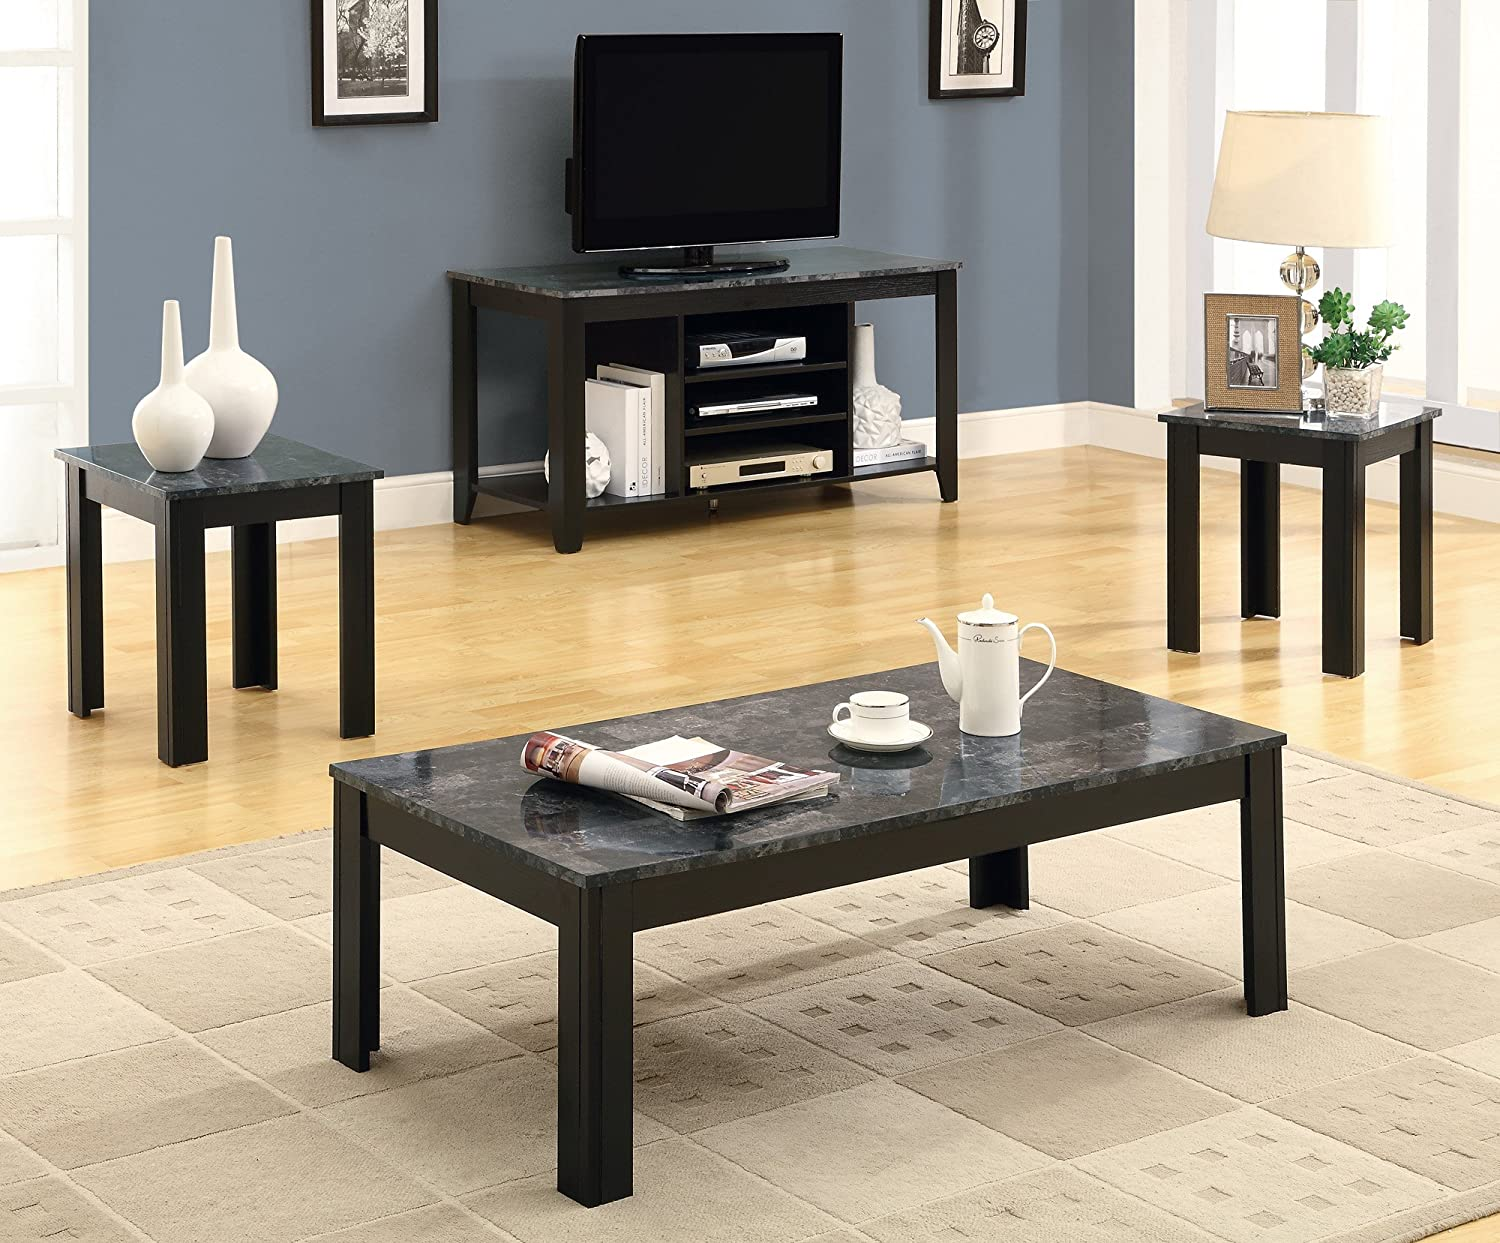 Amazon.com: Monarch Specialties Marble-Look Top 3-Piece Table Set ...